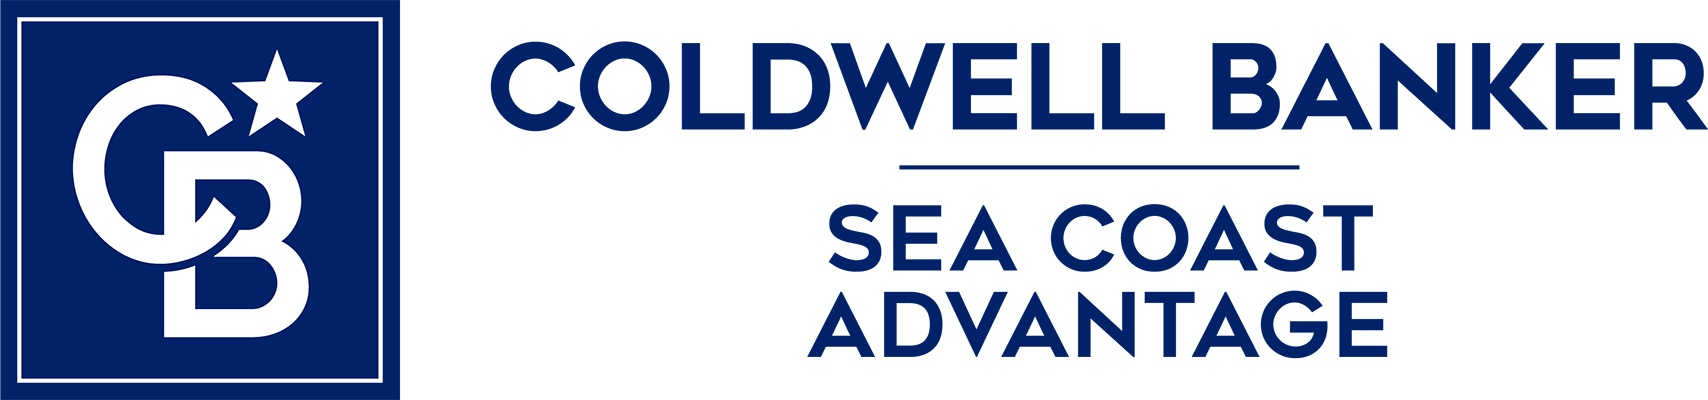 Cyndie Owen - Coldwell Banker Sea Coast Advantage Realty